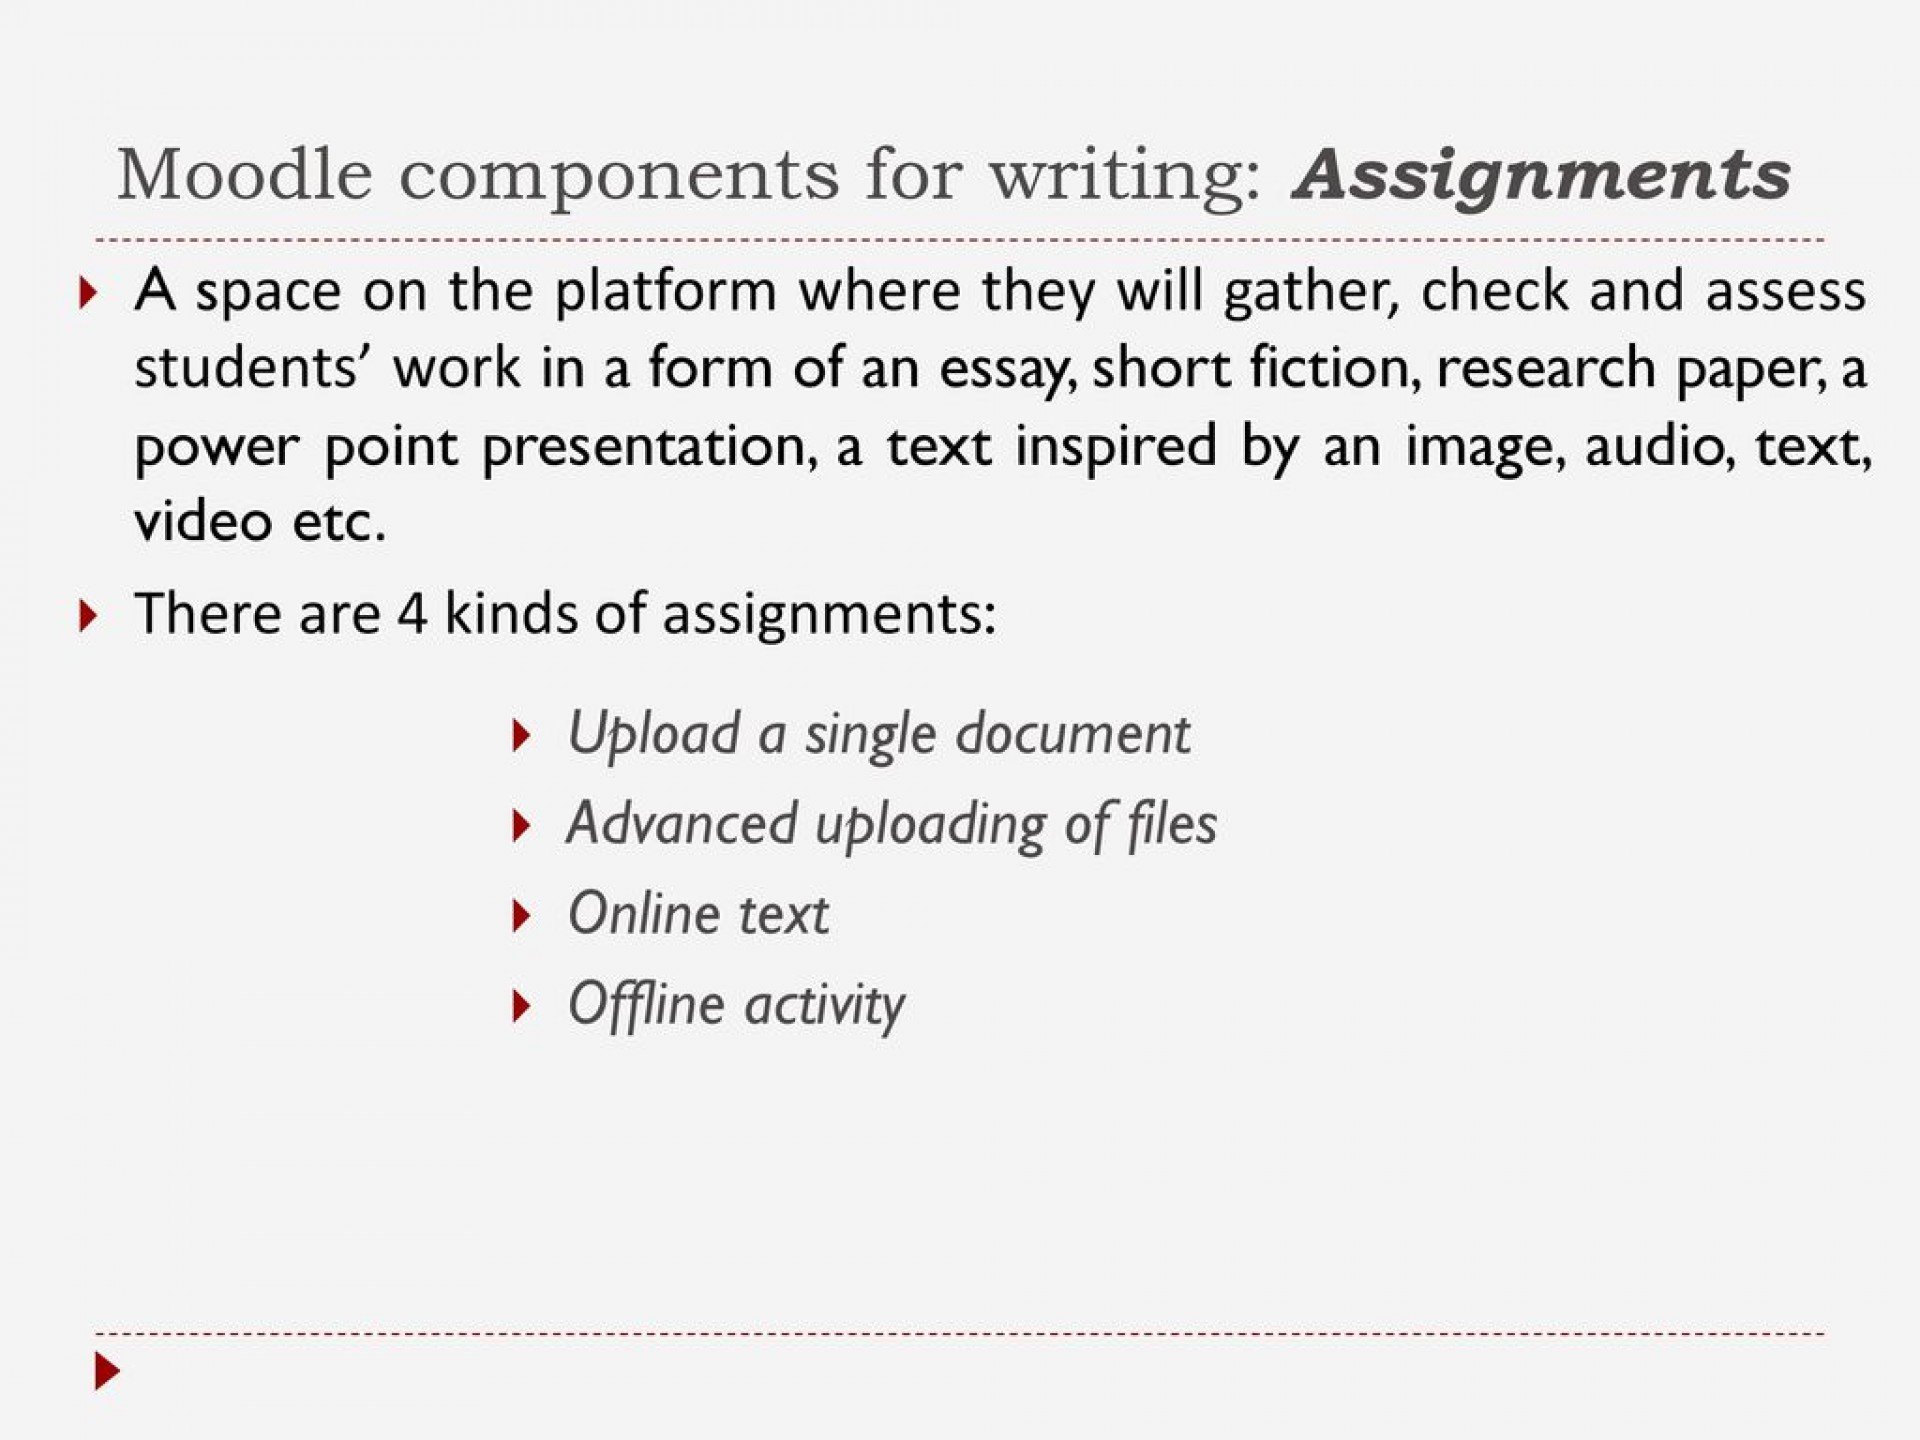 020 Component Of Research Paper Ppt Wondrous Parts Chapter 1-5 1 1920